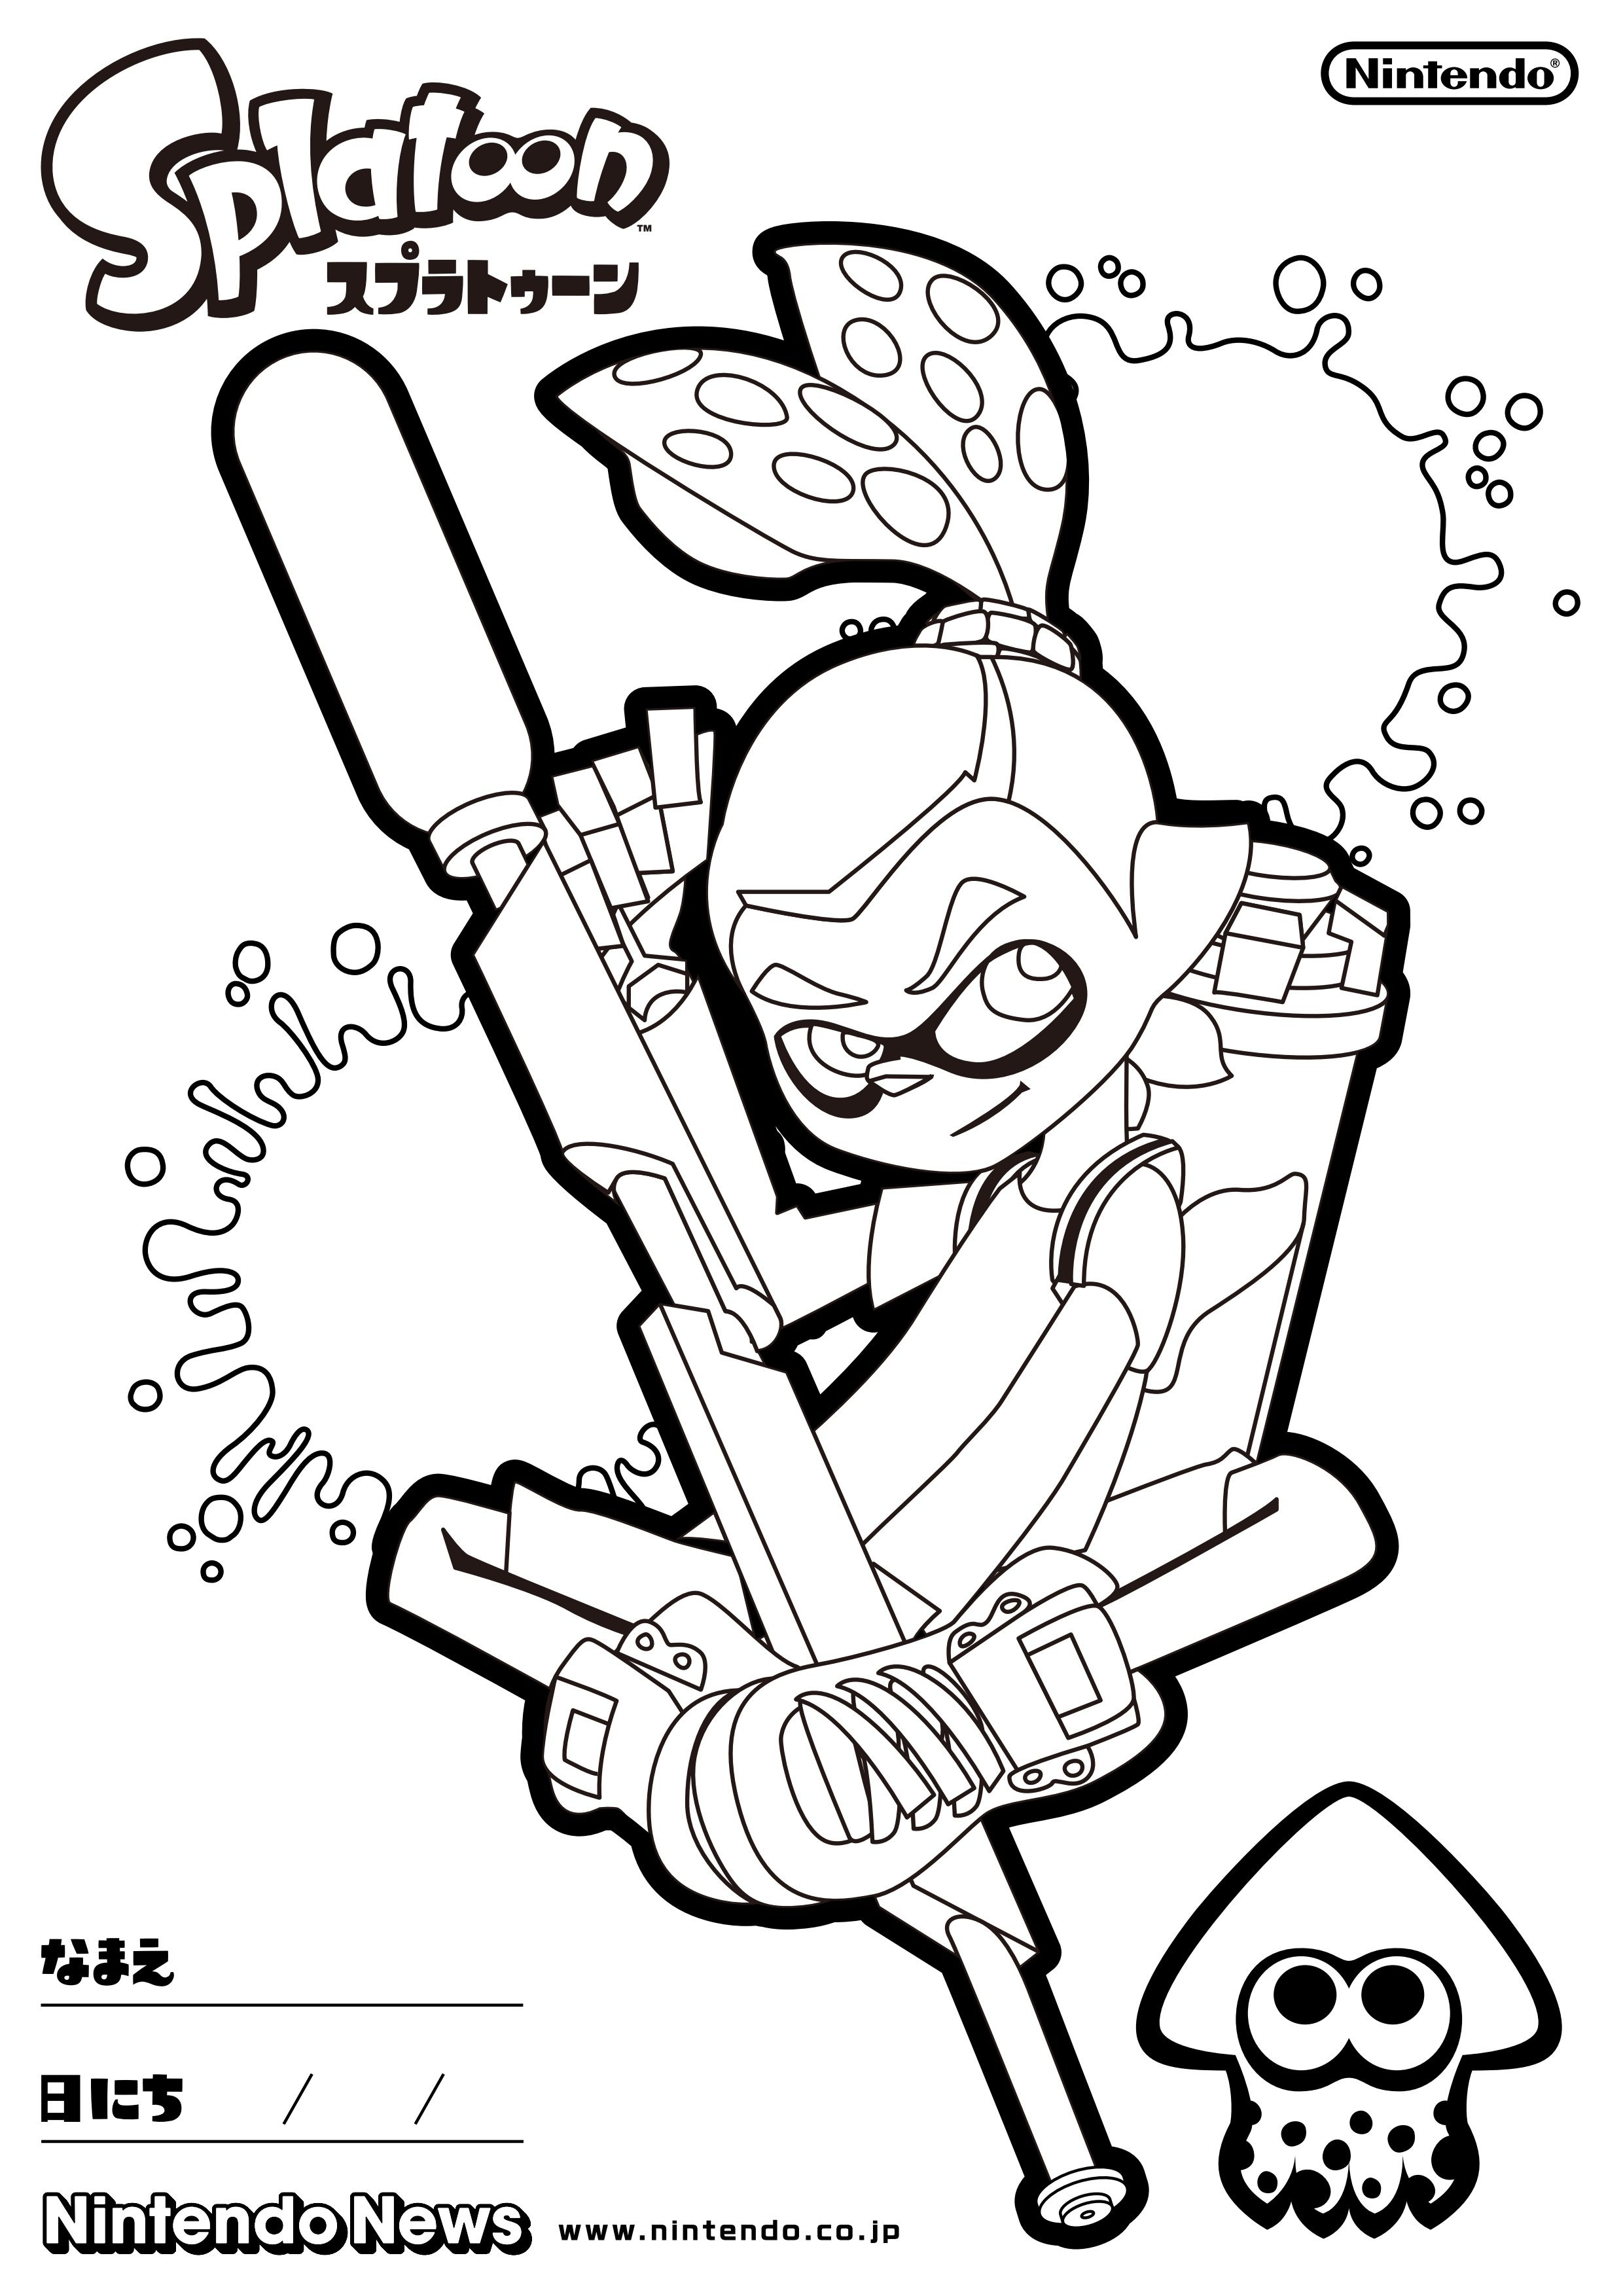 Dessin De Coloriage à Imprimer Pin By Sheila Magnusson On Splatoon Birthday Pinterest